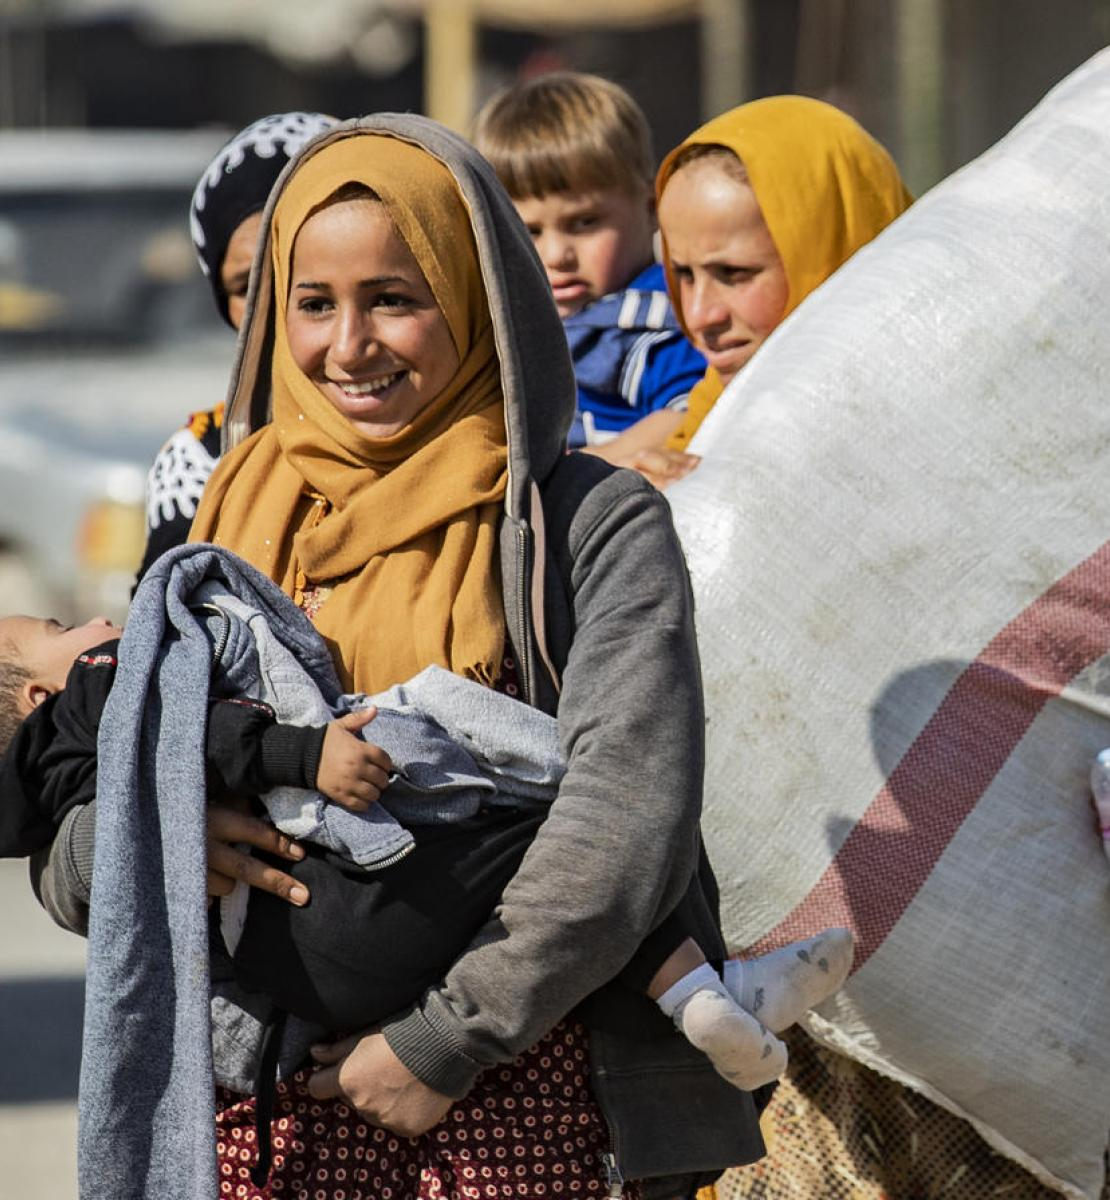 A woman smiles as she carries a sleeping child. Another woman walks behind her as she carries a large bag.